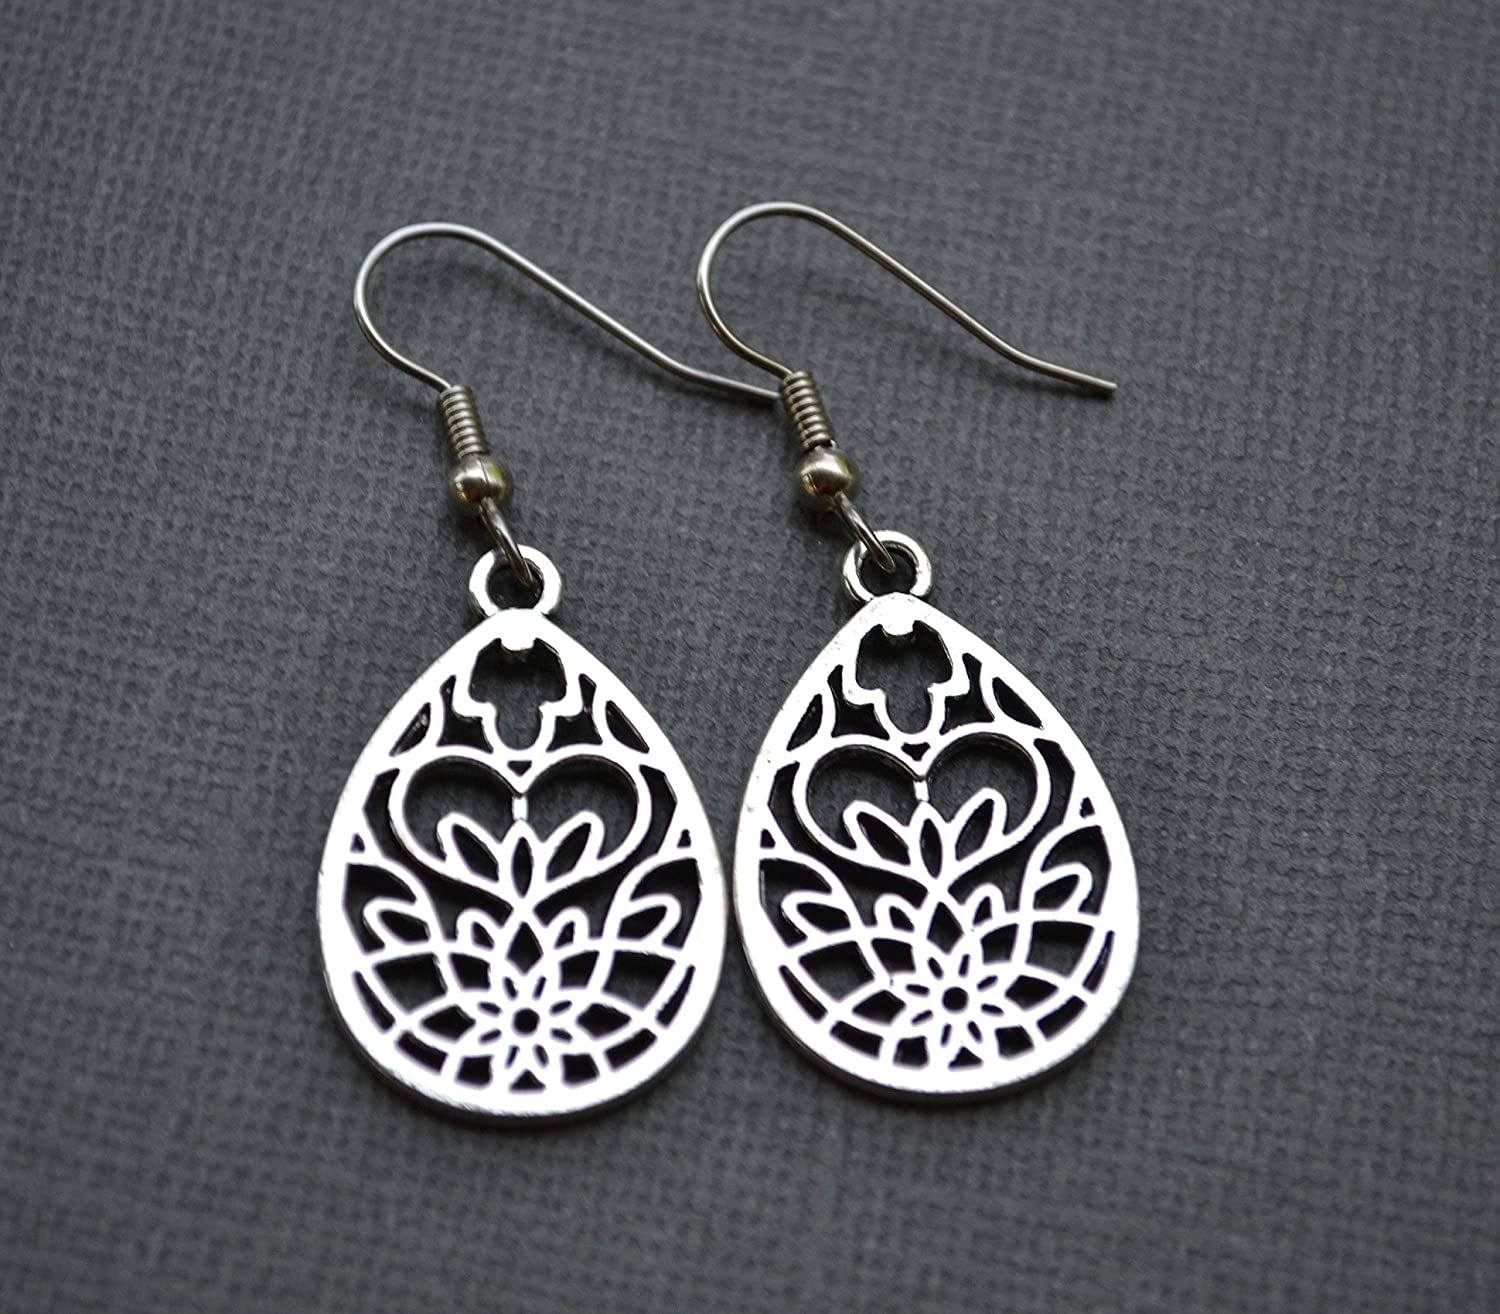 What type are you? Onyx or Rock Crystal earrings Rosegold Mandala-black or white